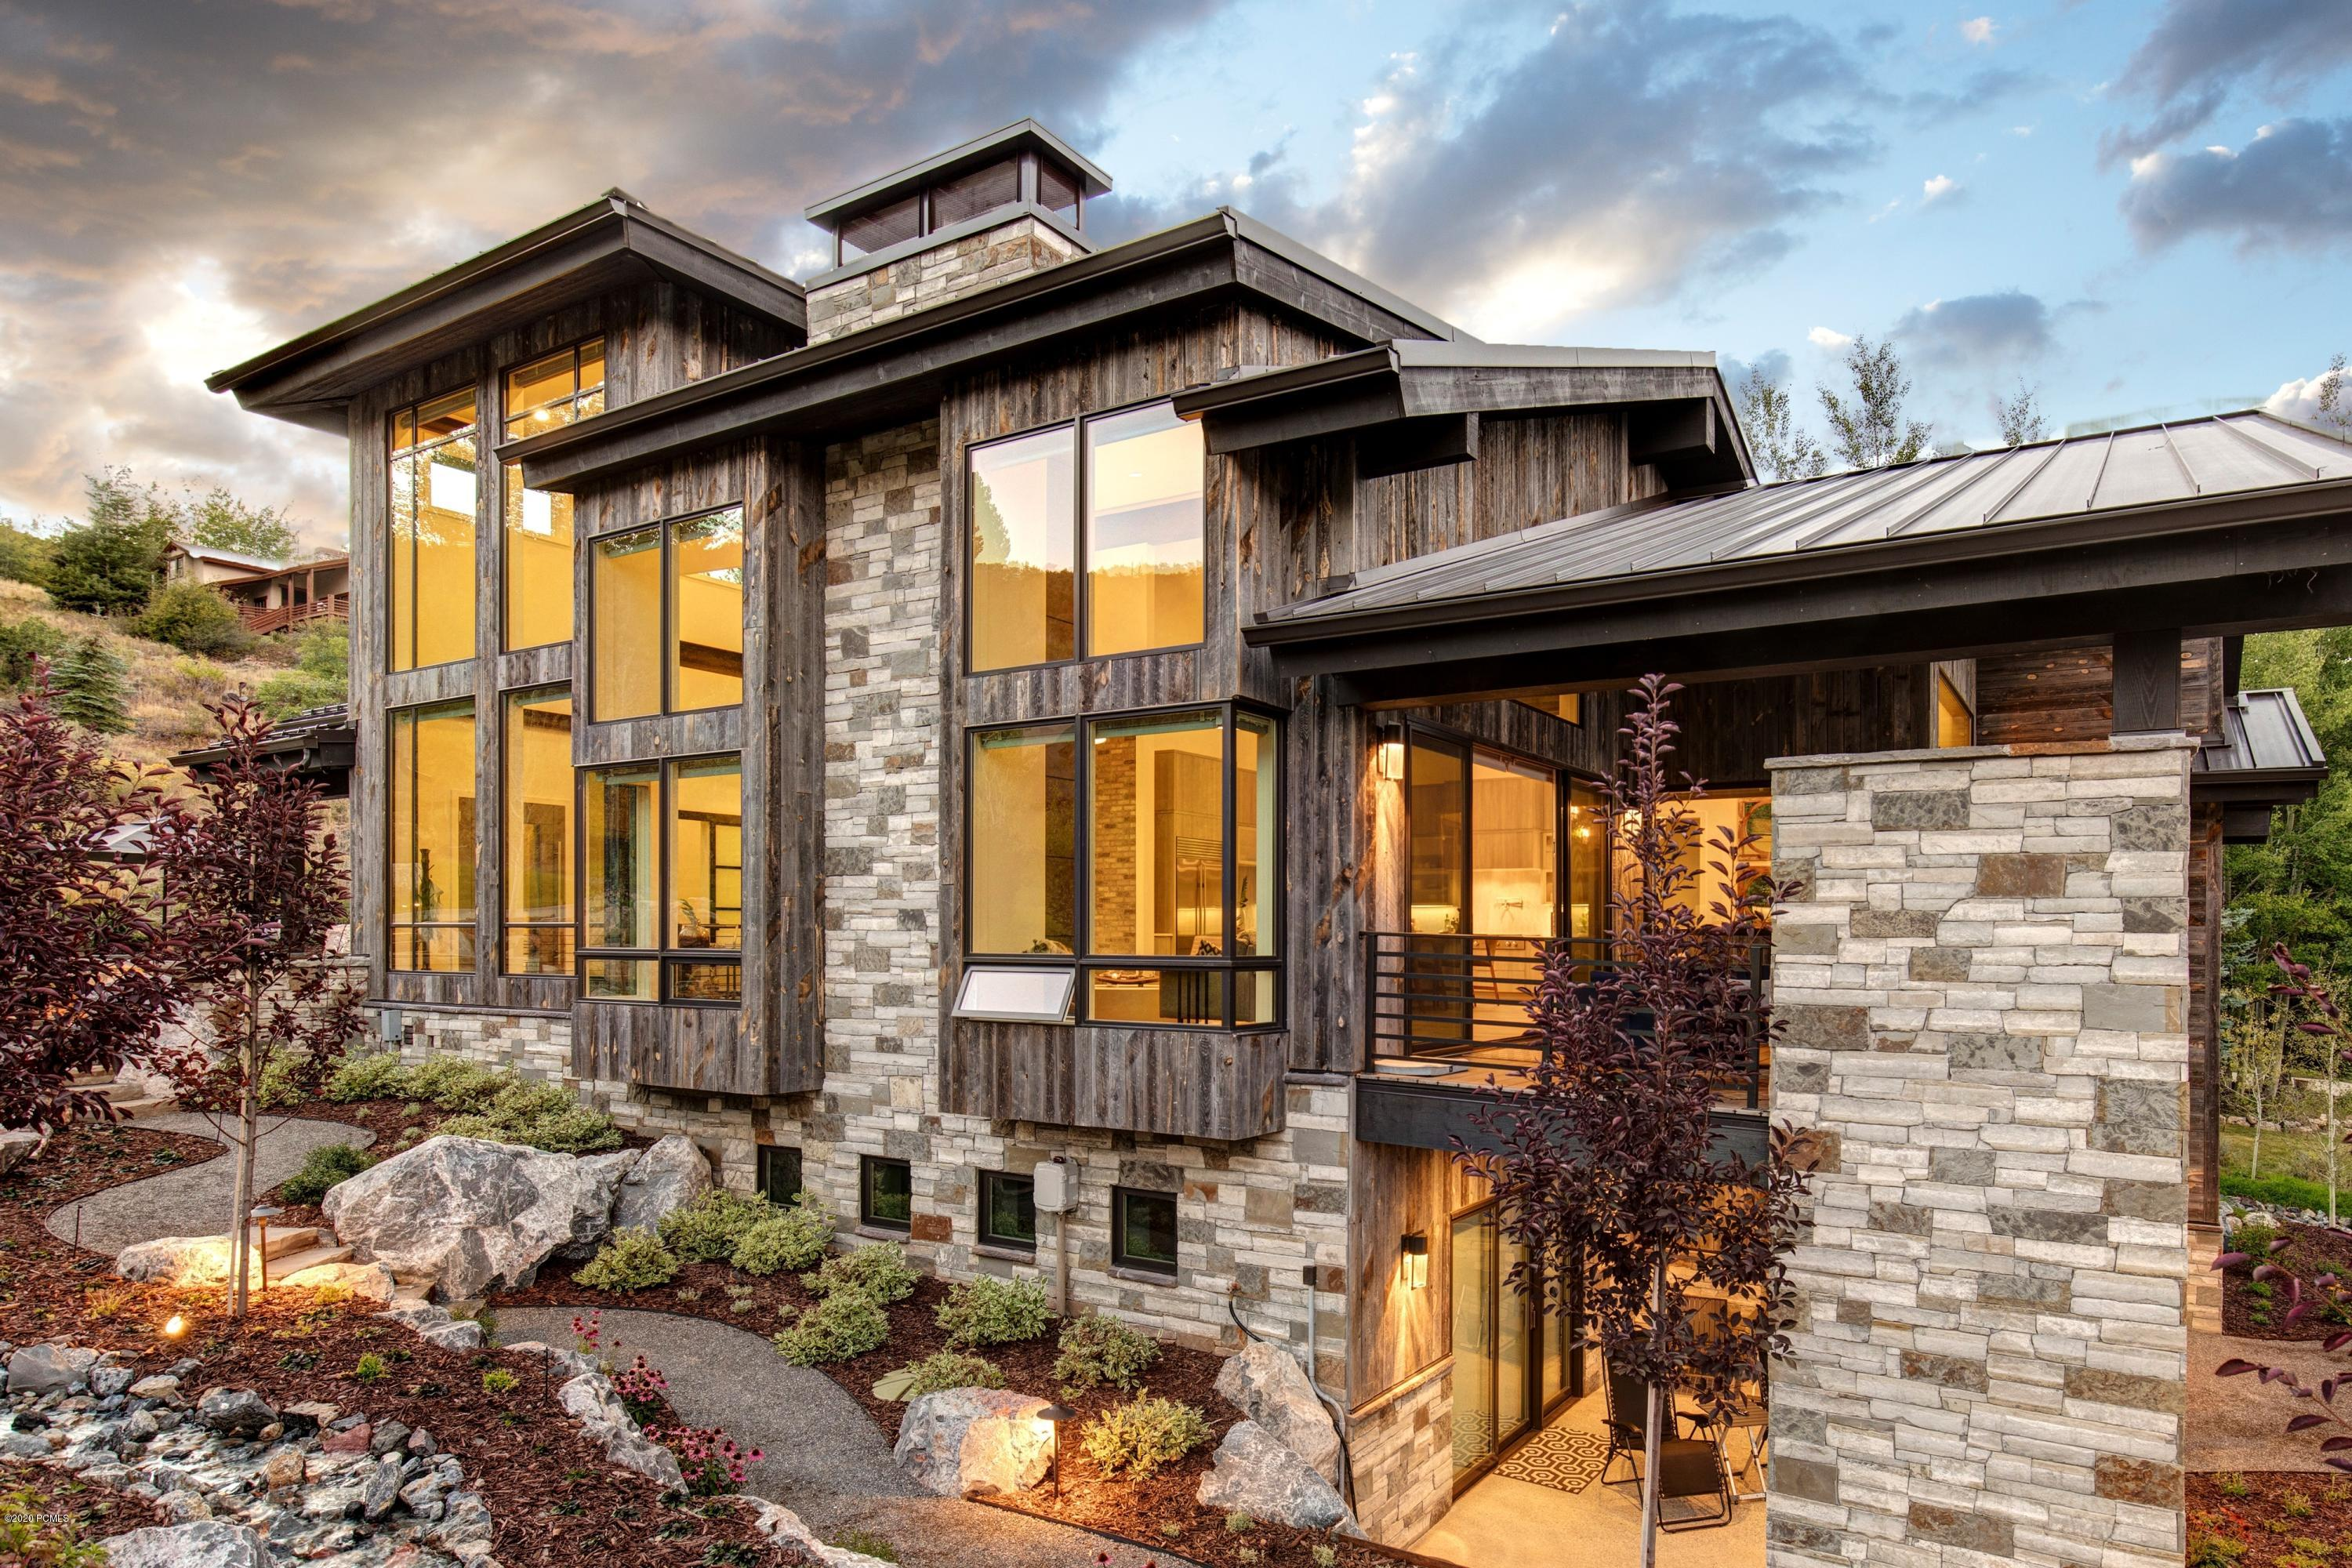 3010 Solamere Drive, Park City, Utah 84060, 4 Bedrooms Bedrooms, ,6 BathroomsBathrooms,Single Family,For Sale,Solamere,12001765